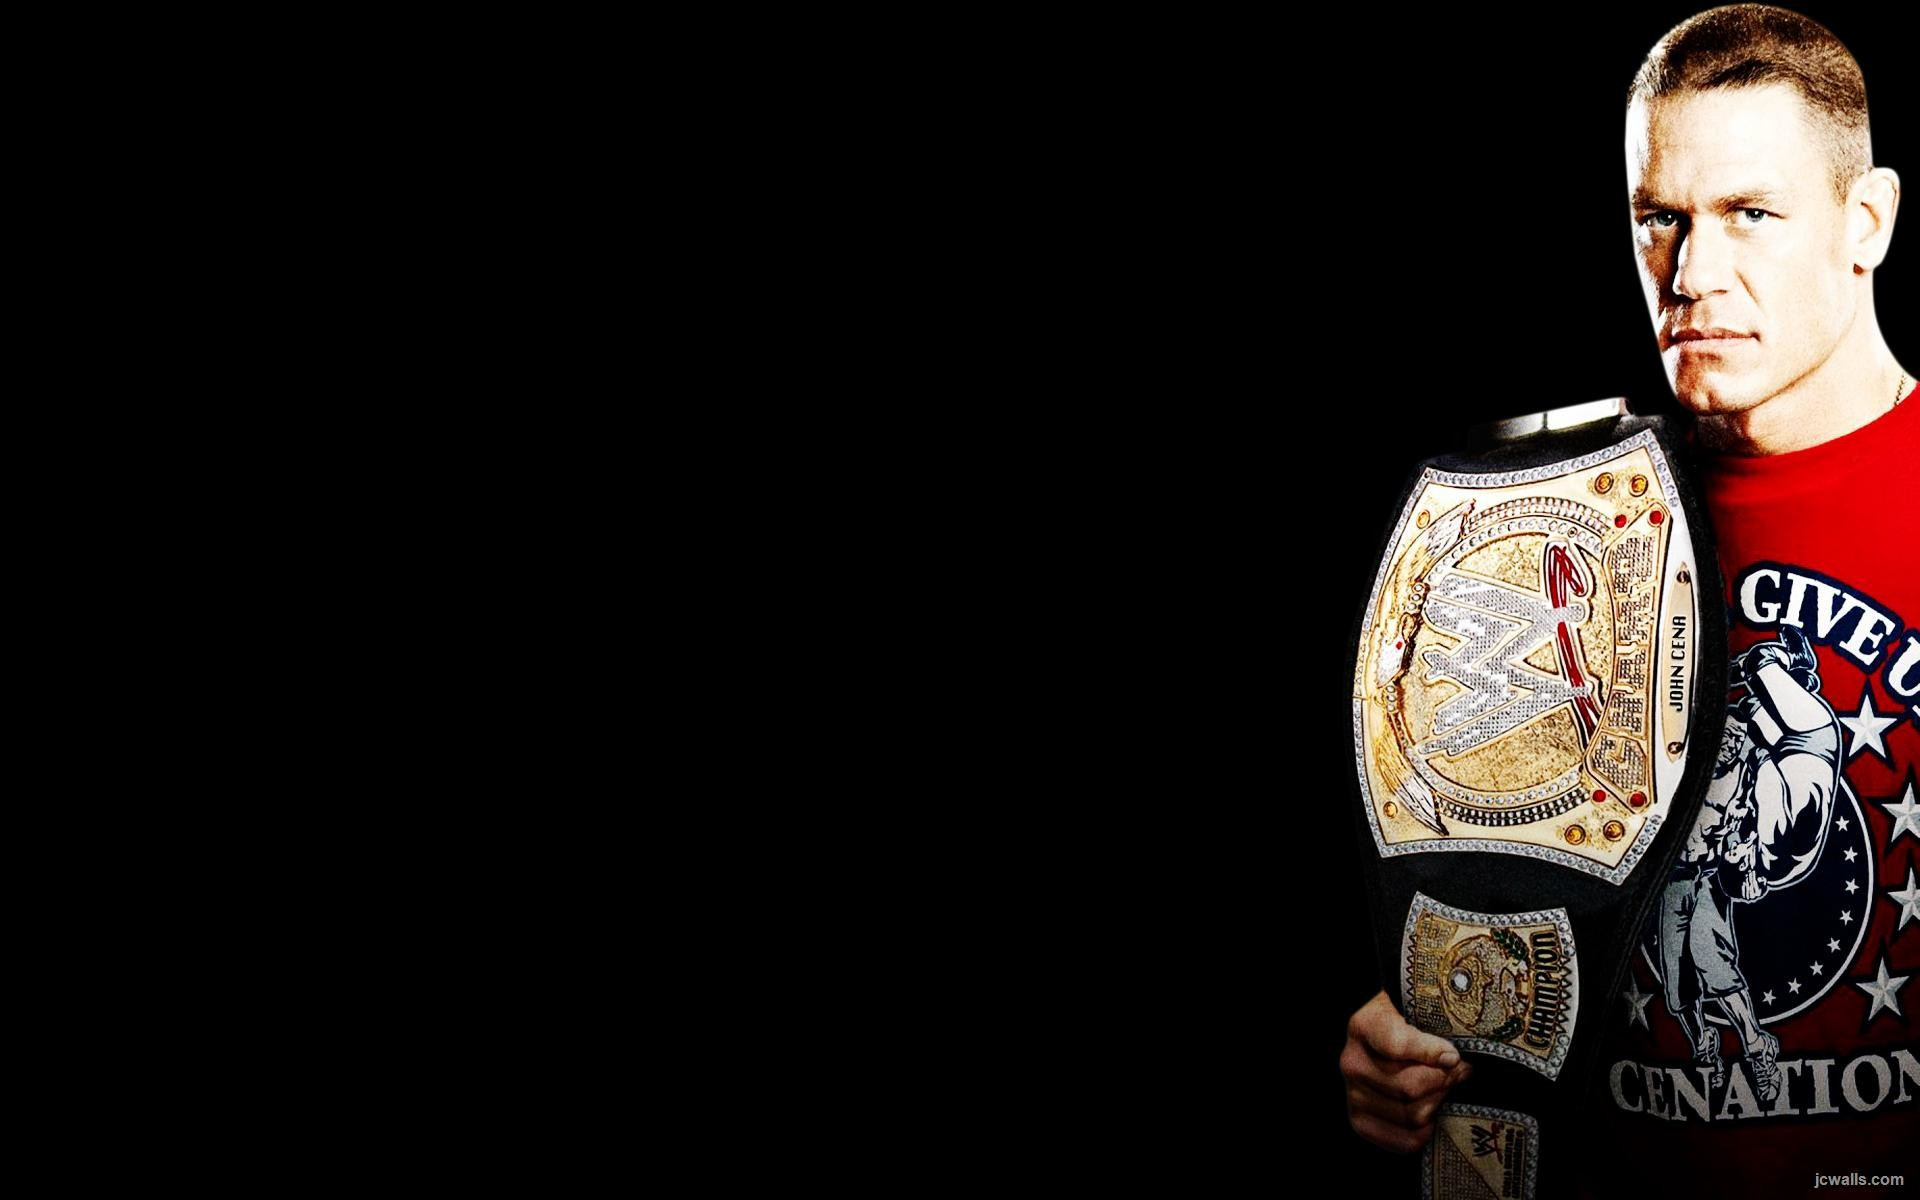 Wwe john cena mobile wallpapers 2018 50 images for Cool wwe pictures